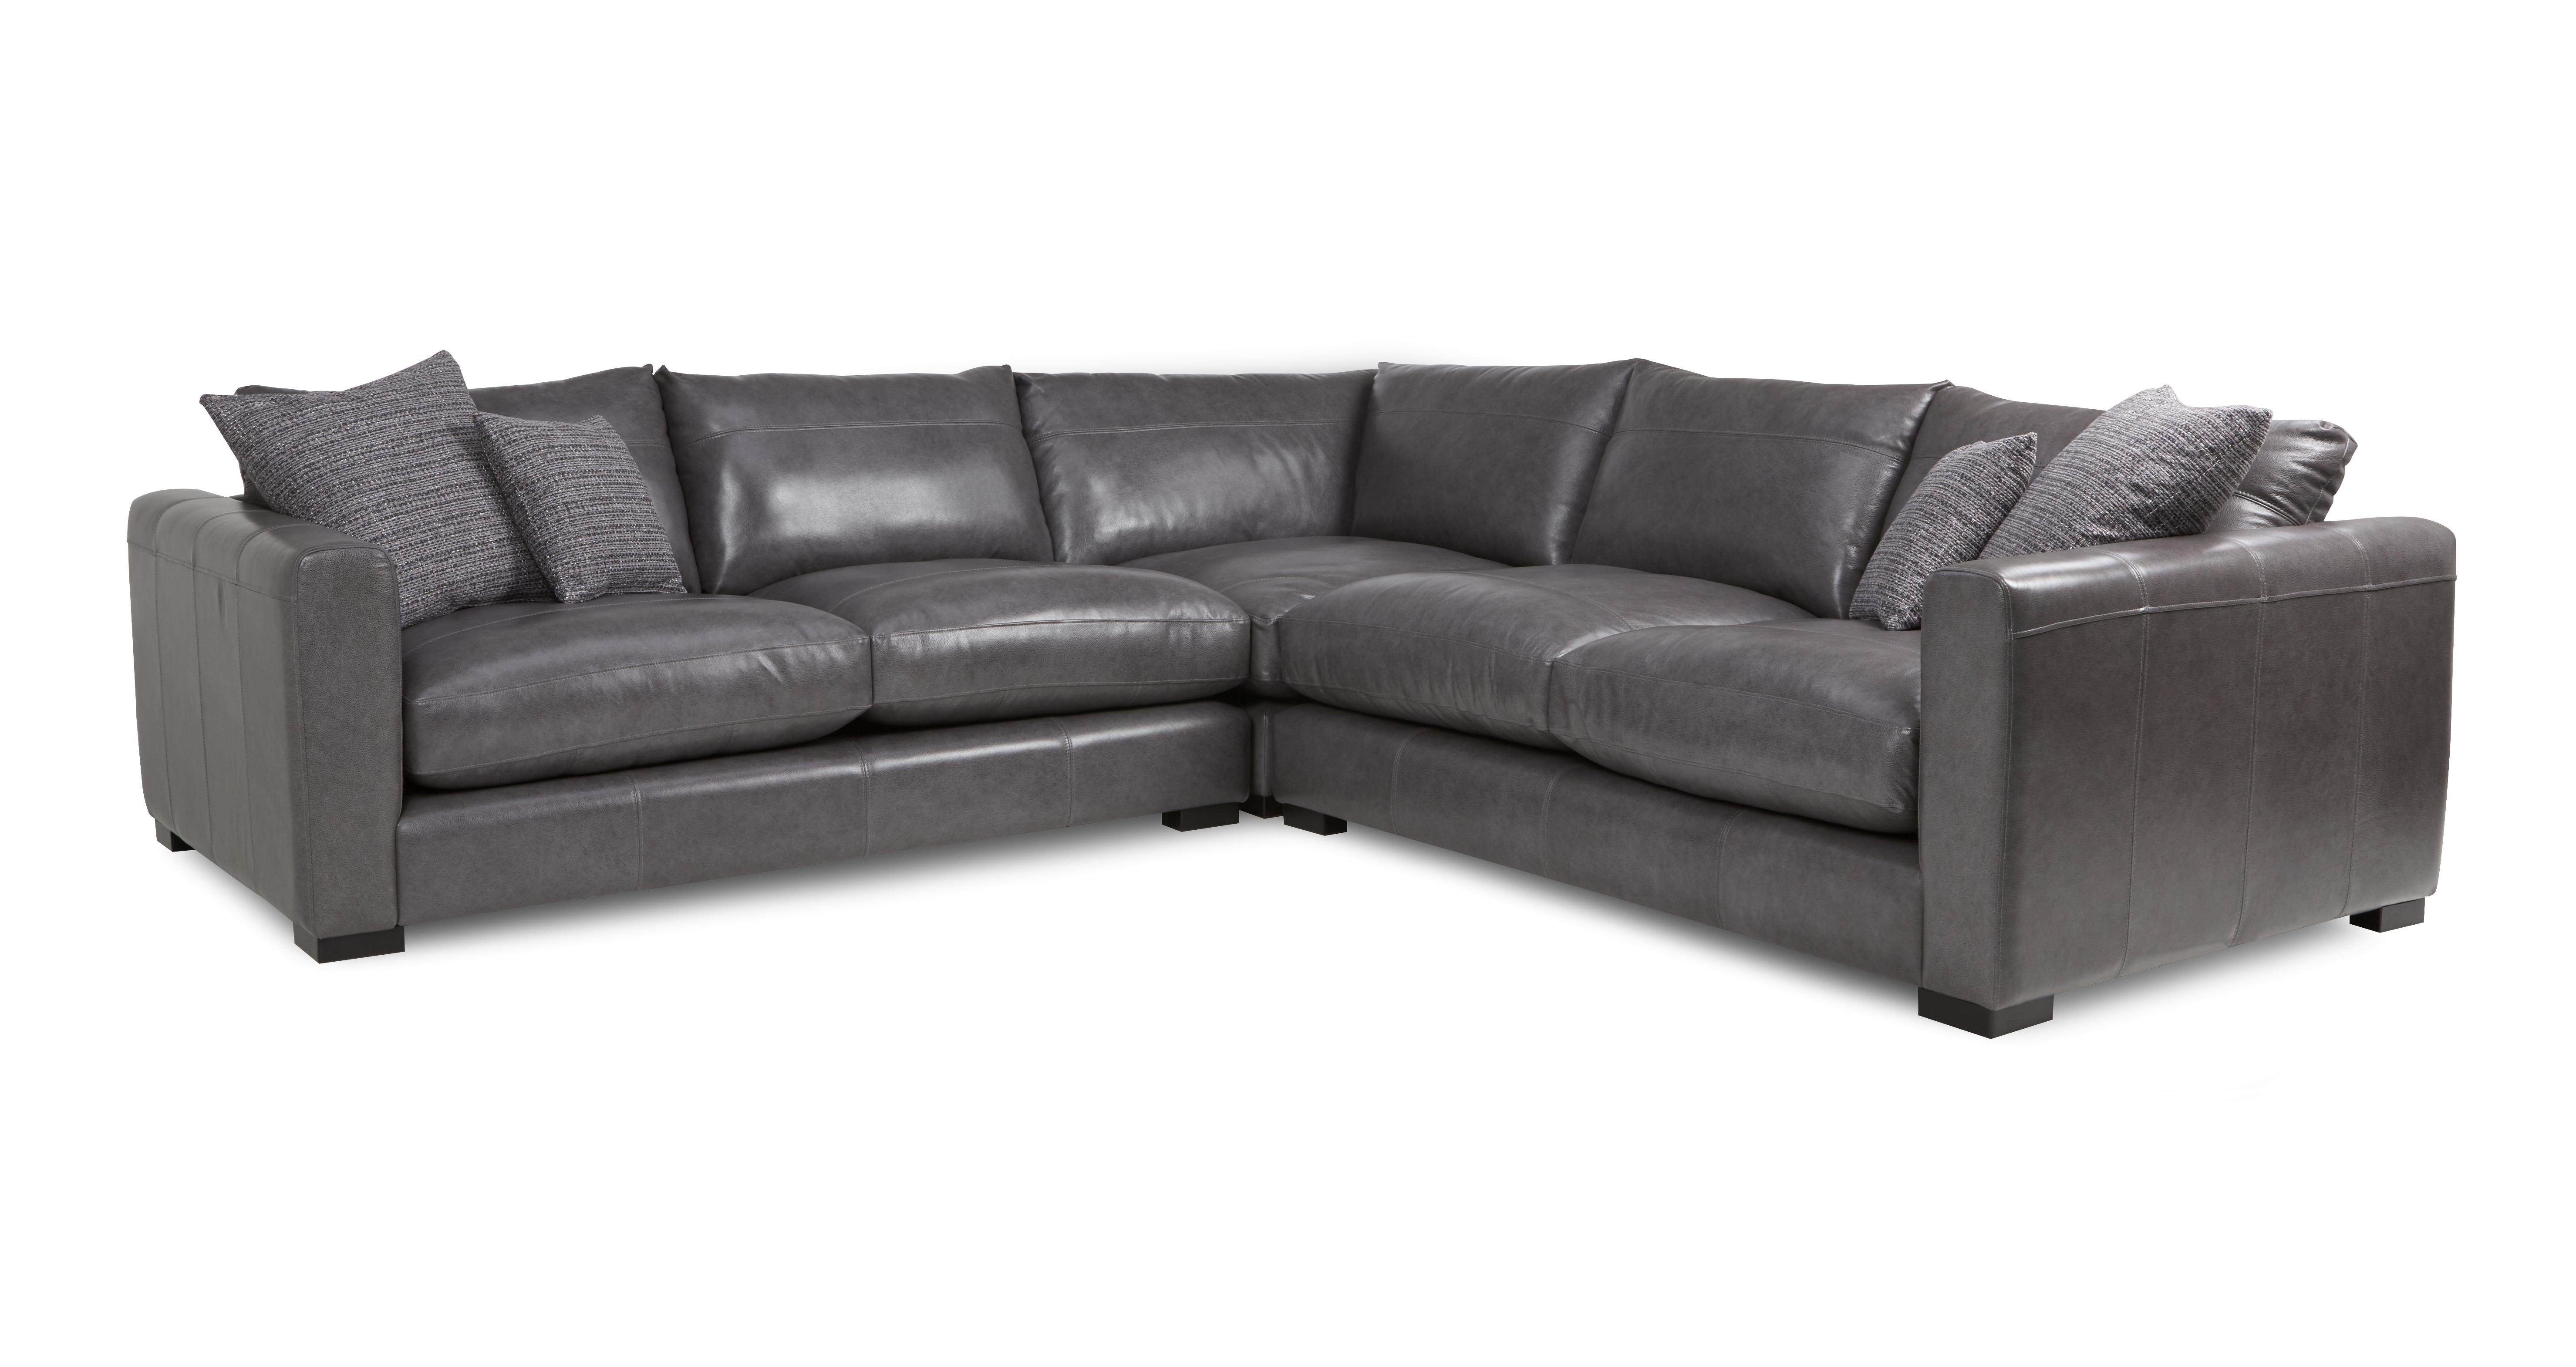 leather sofas dfs small rounded corner sofa brokeasshome